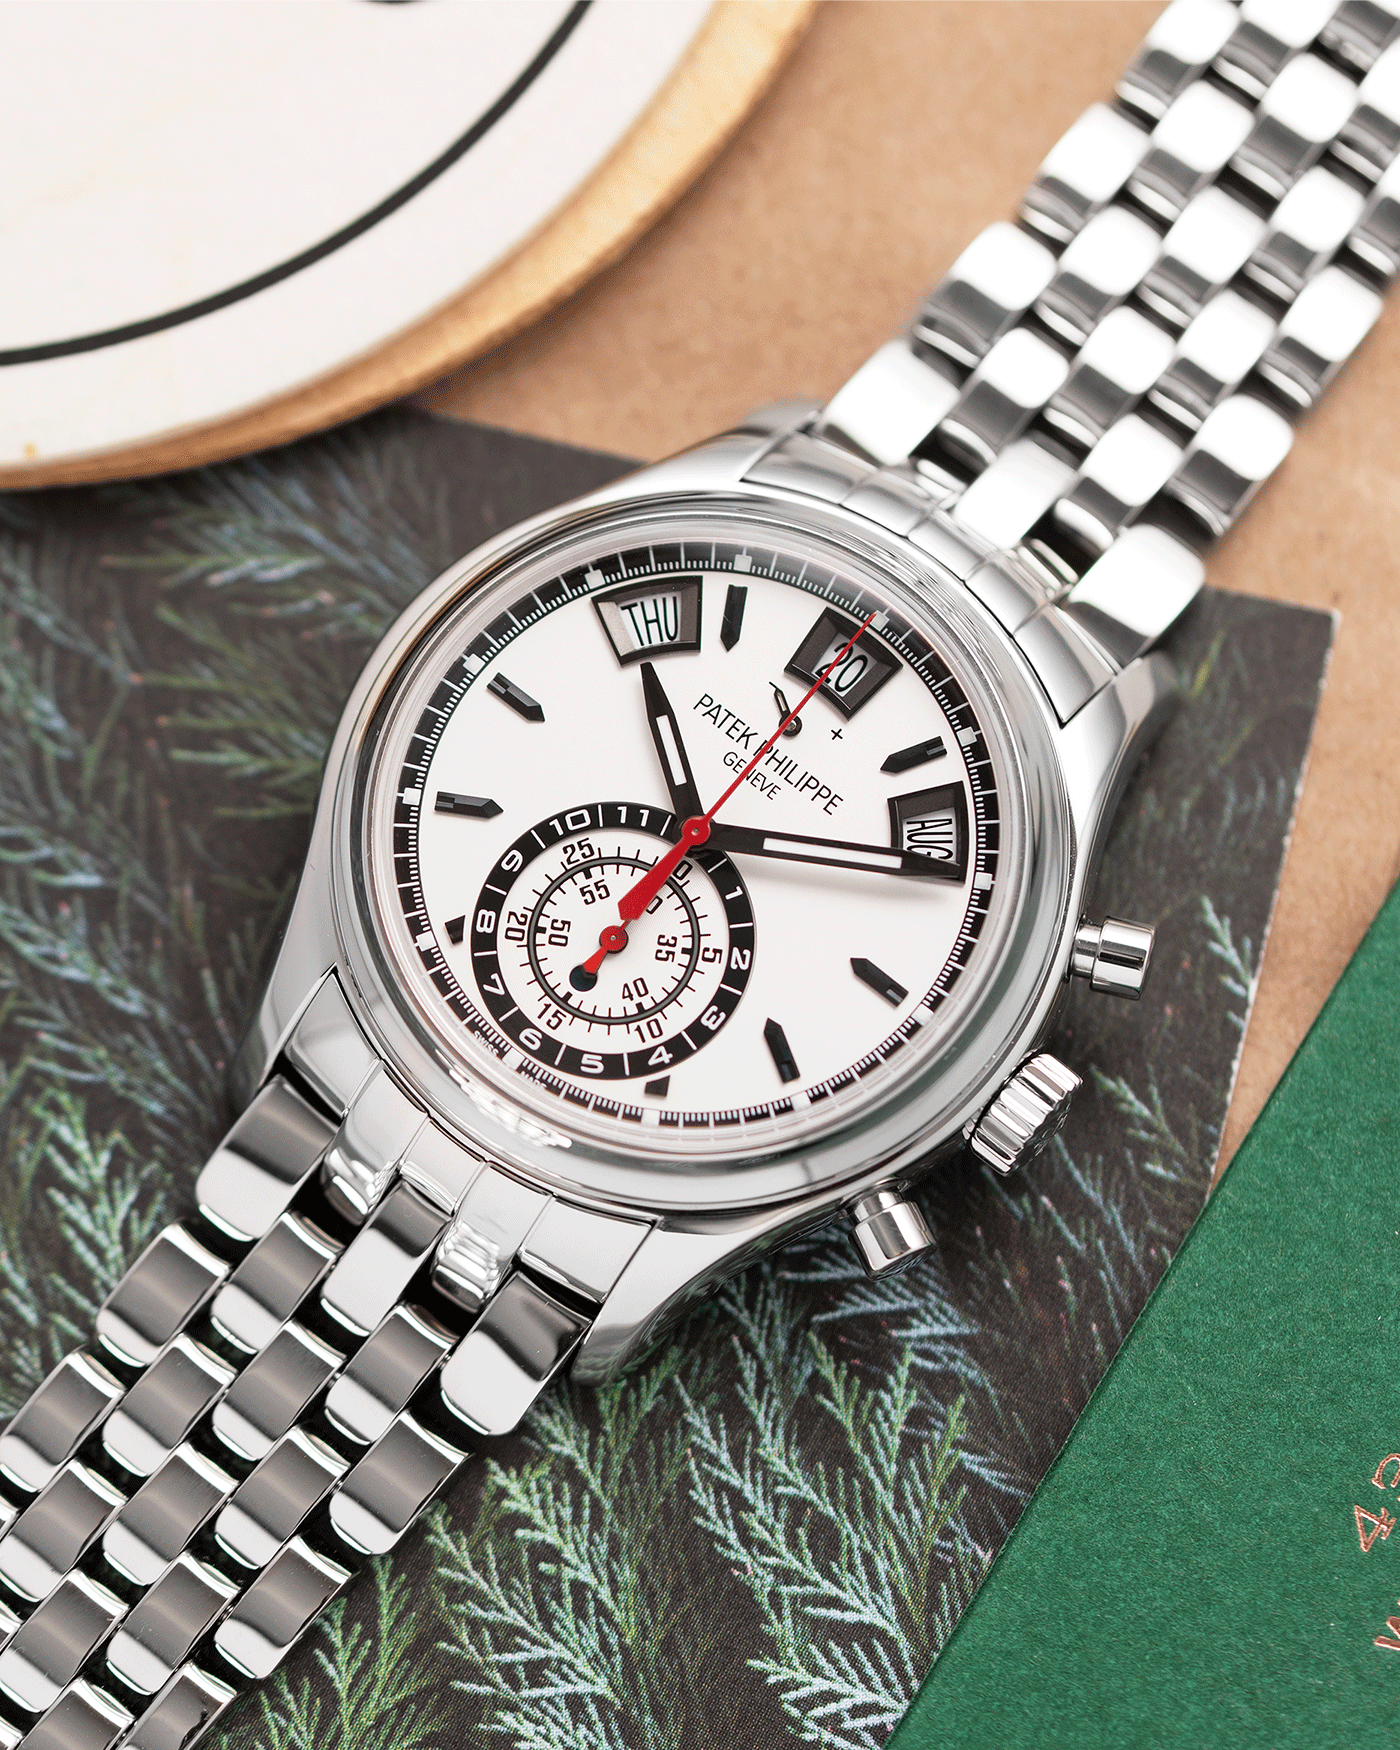 Patek Philippe 5960A Annual Calendar Chronograph Watch | S.Song Timepieces